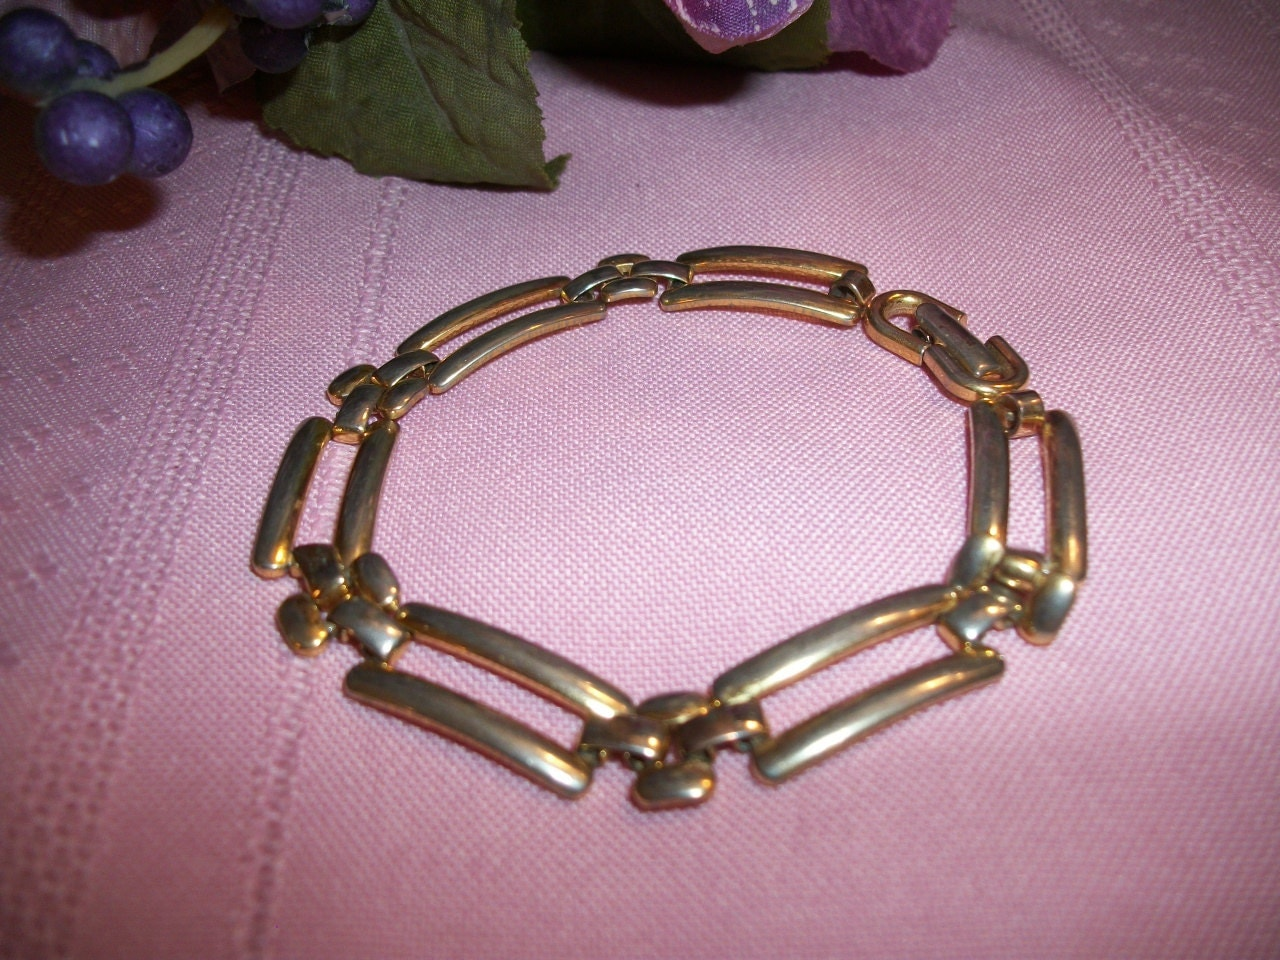 s bracelet signed monet jewelry gold metal panther